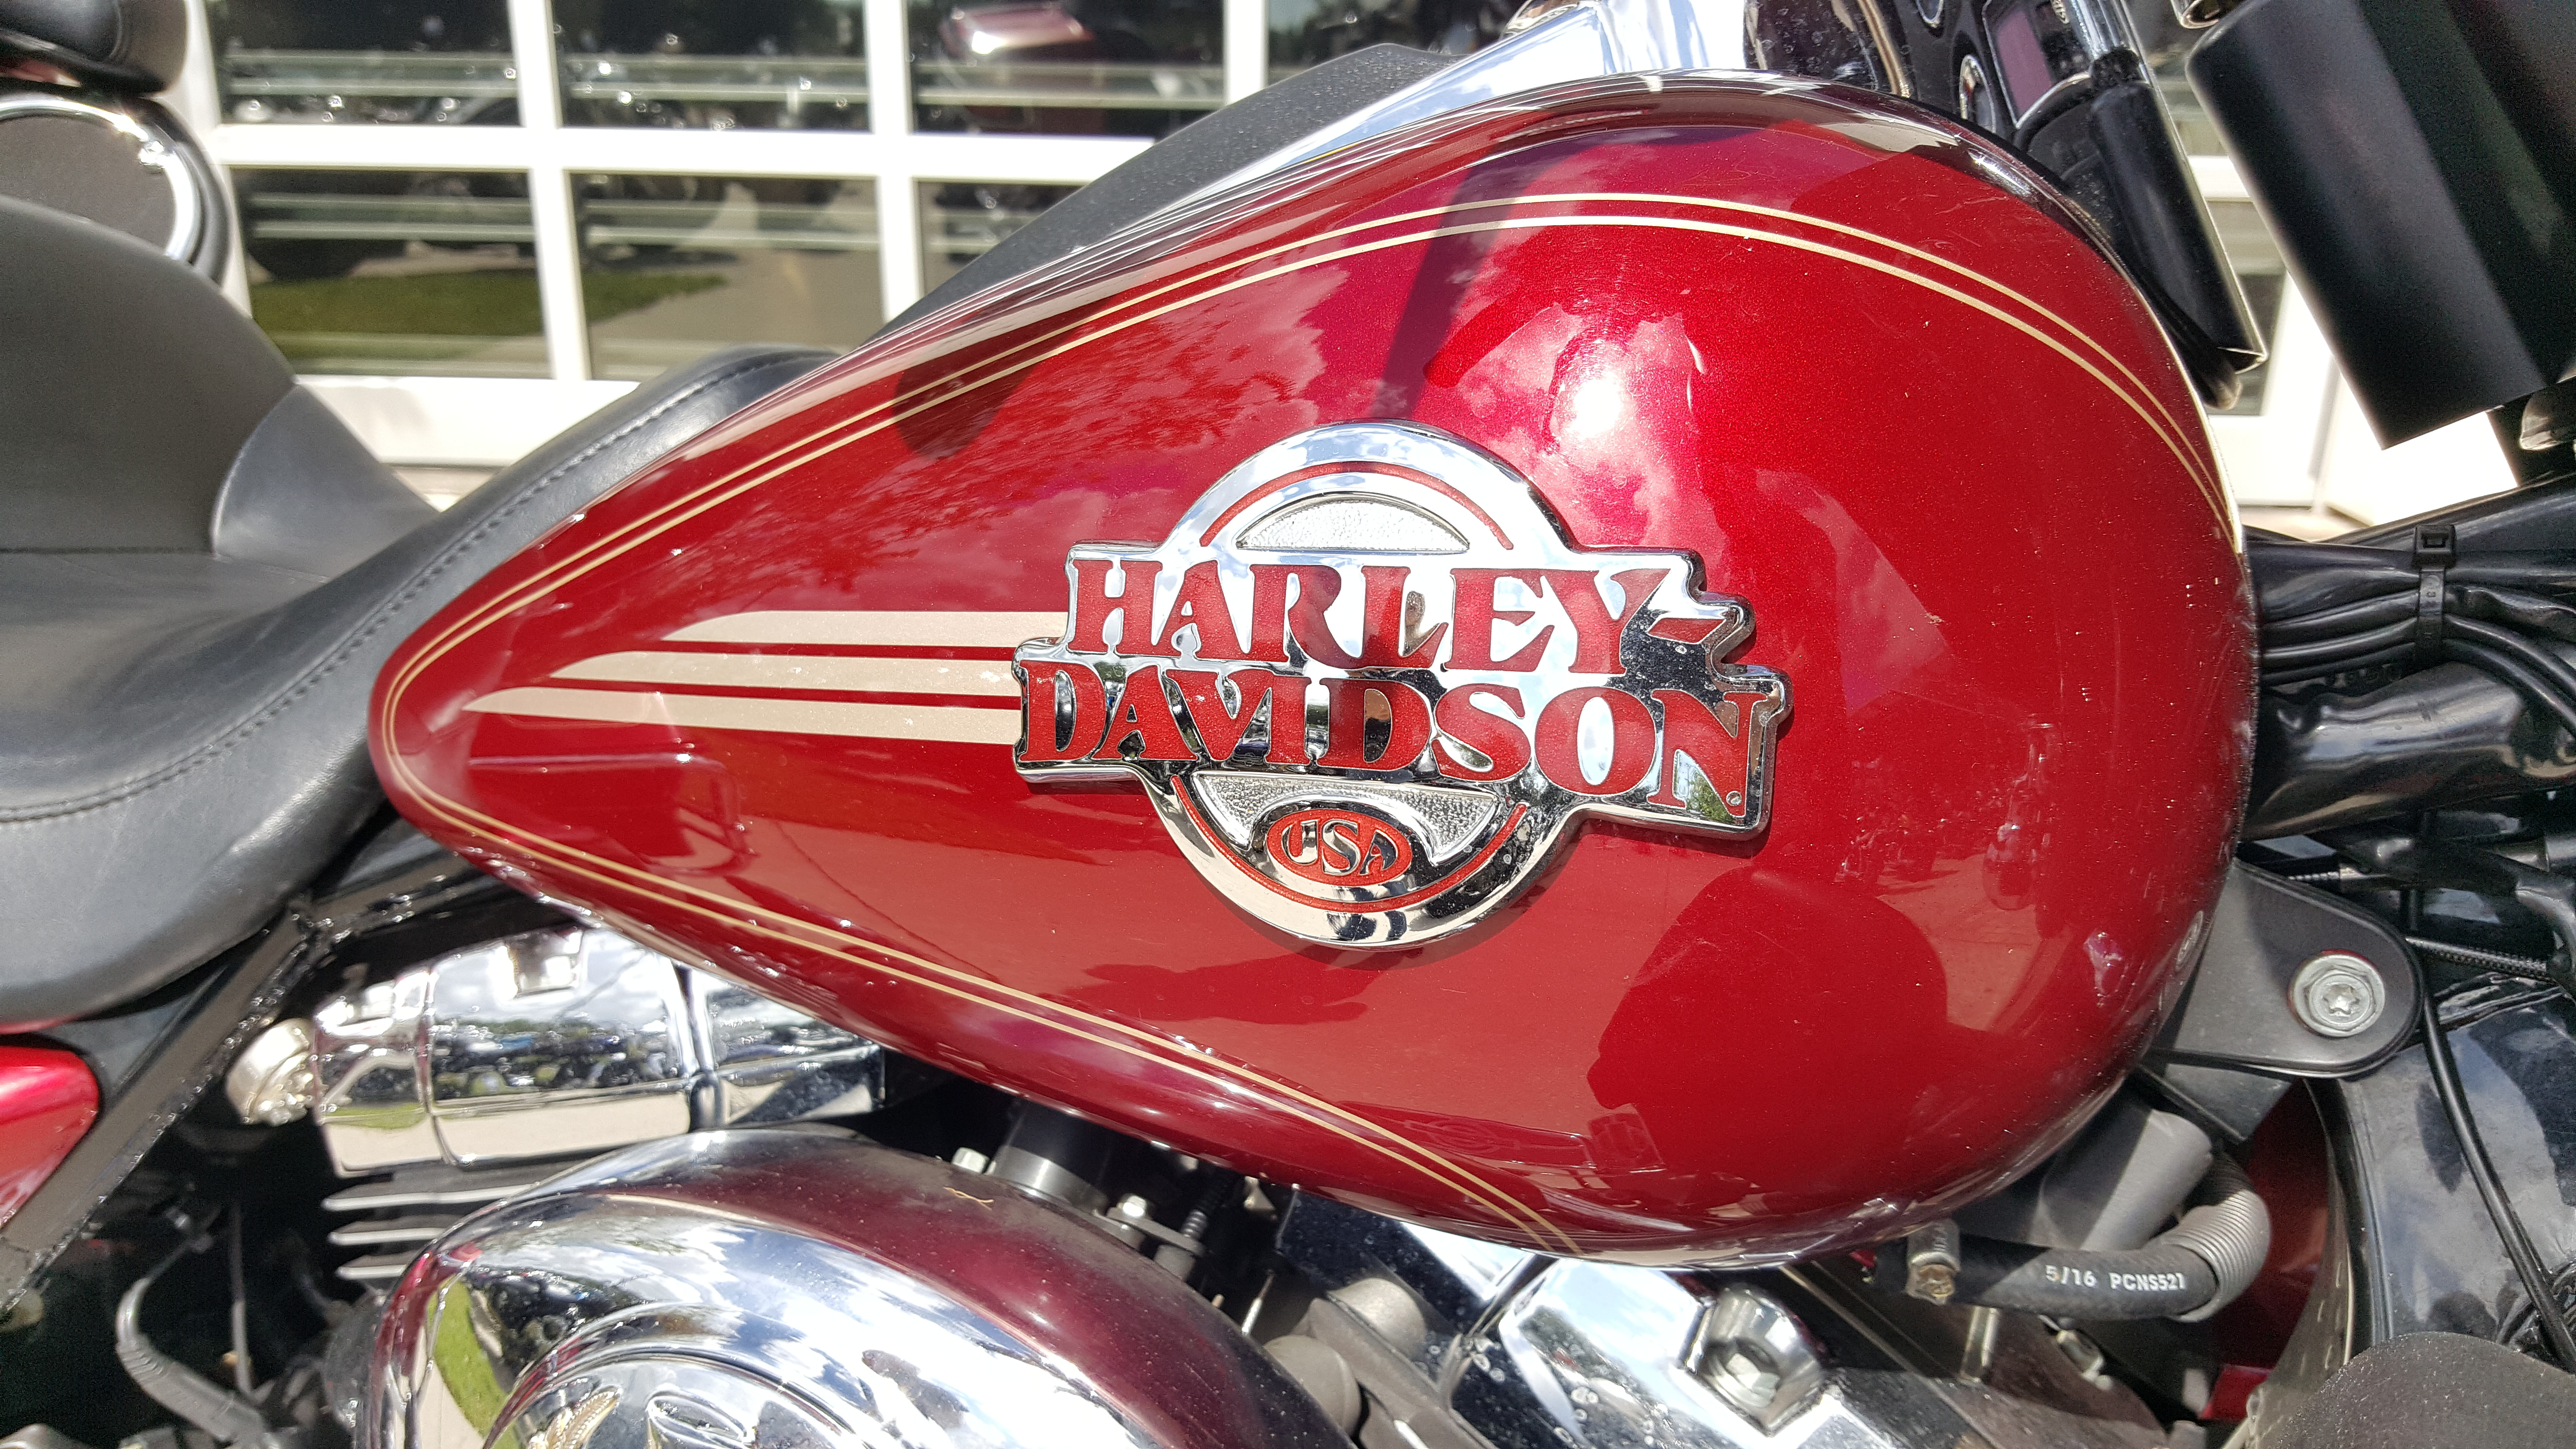 Pre-Owned 2005 Harley-Davidson Electra Glide Ultra Classic